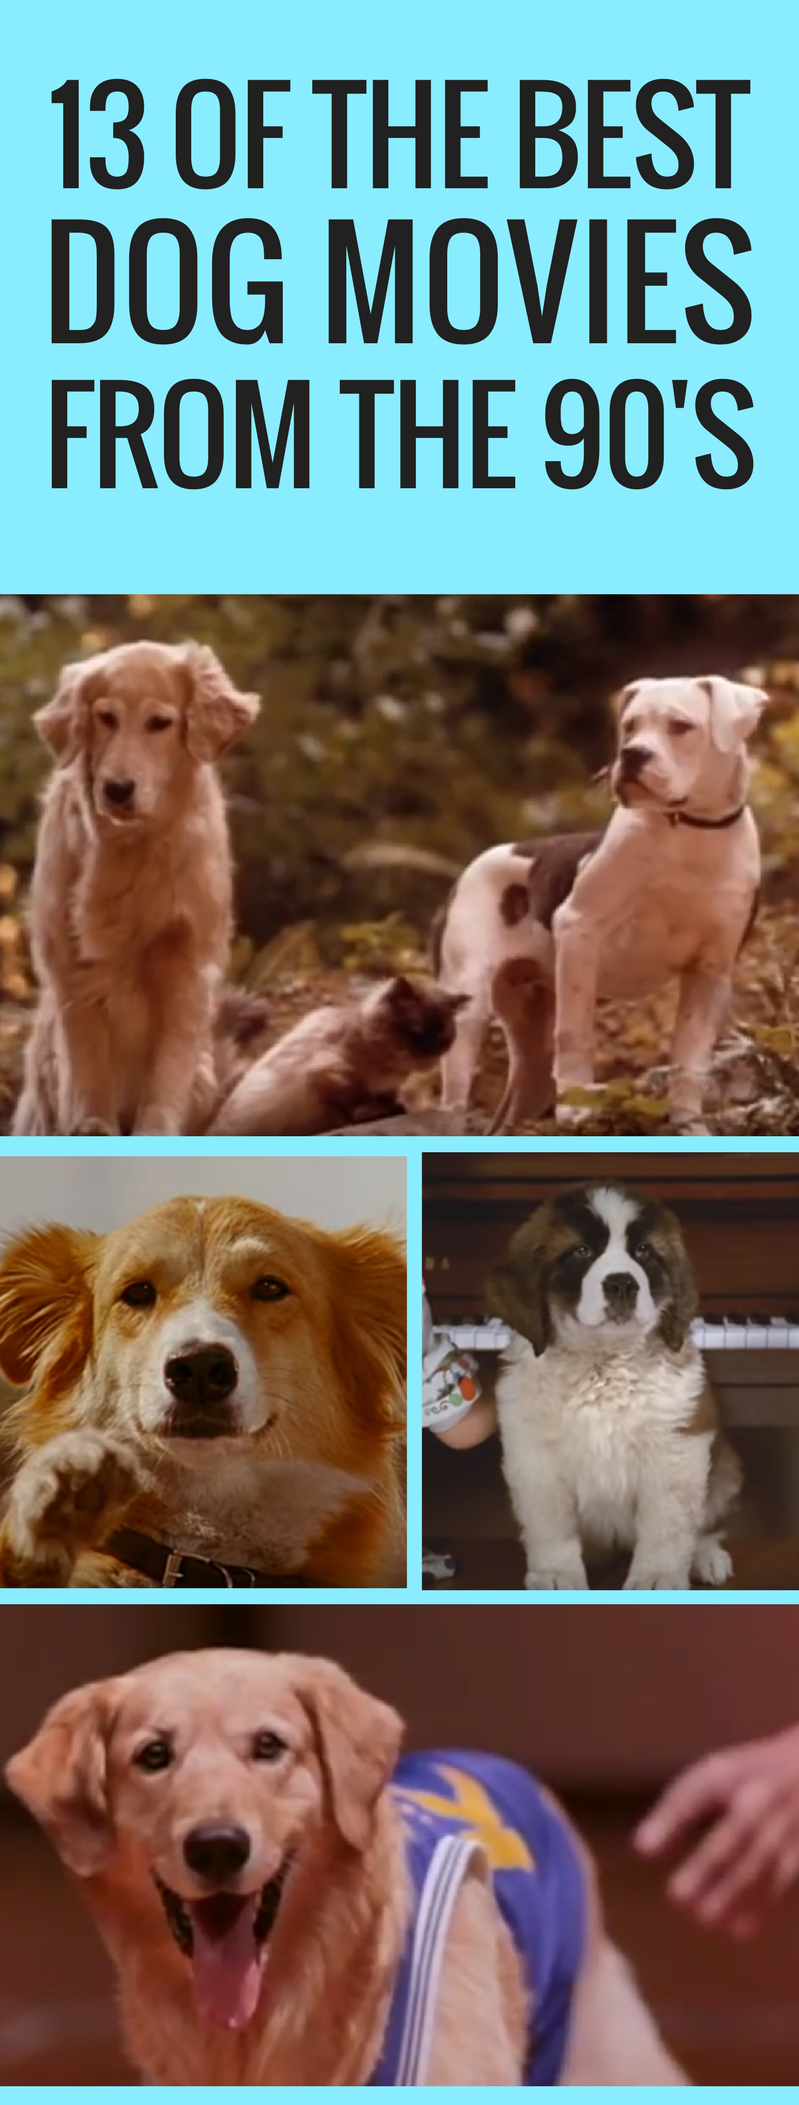 The 13 Best Dog Movies to Watch From the 90's